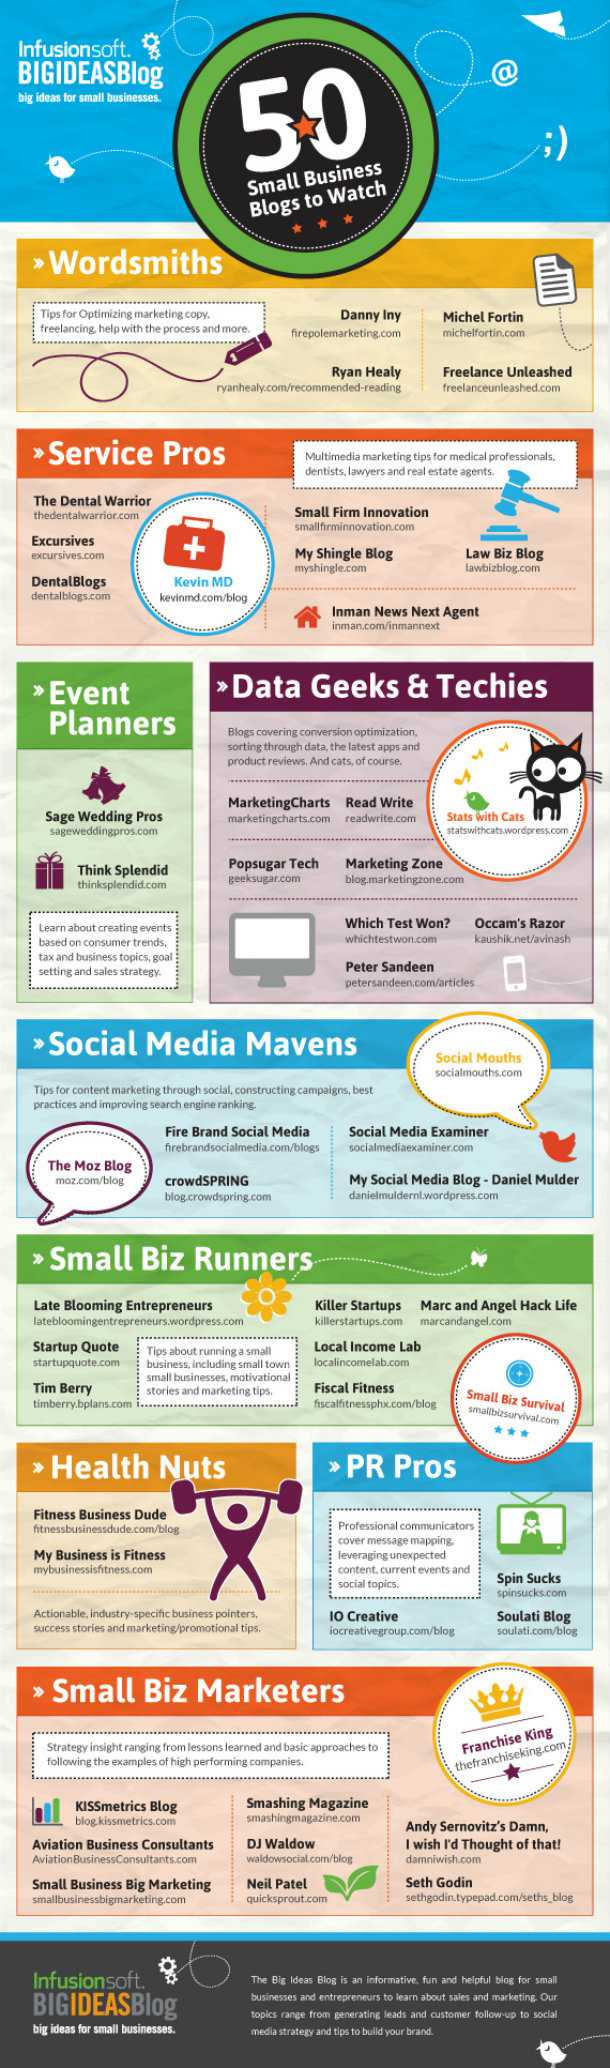 edited50-small-business-blogs-infographic-infusionsoft